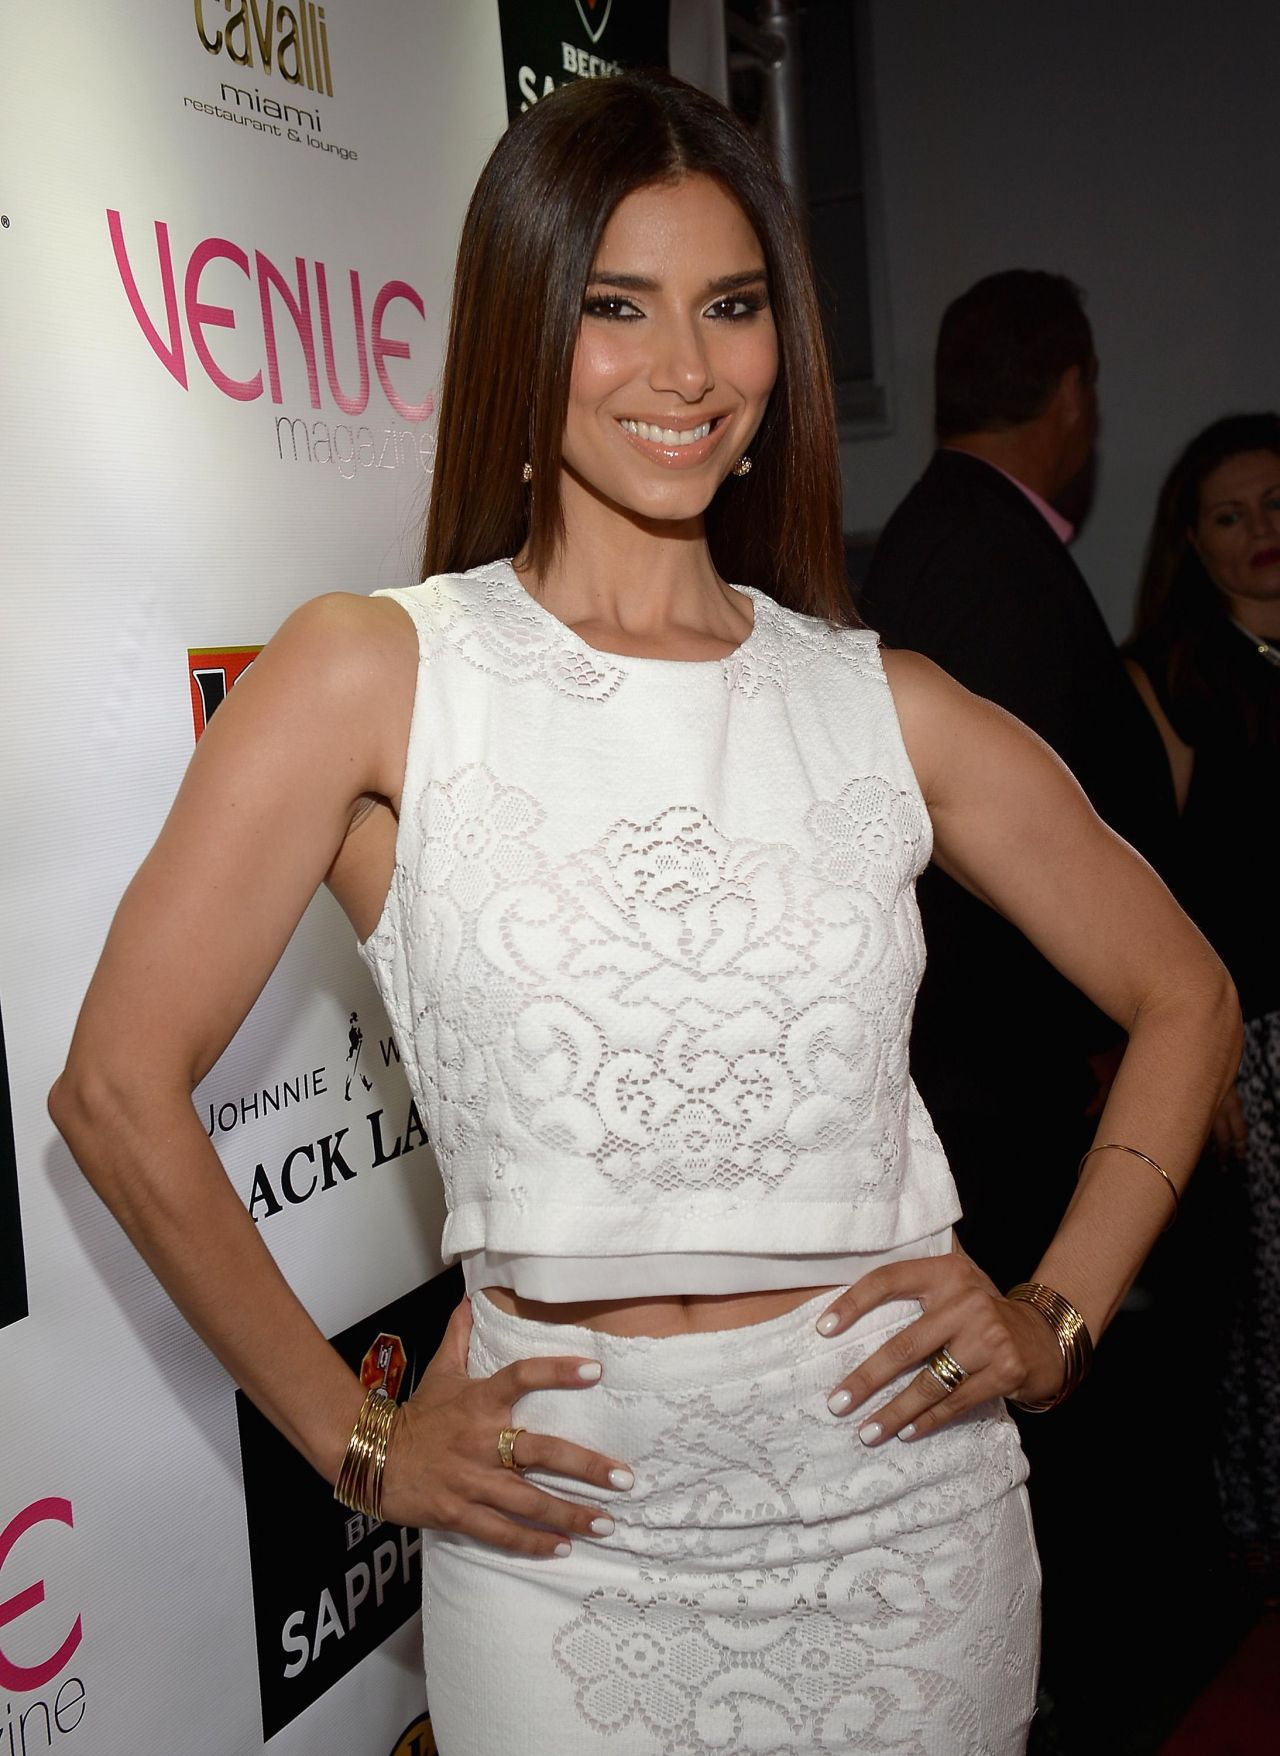 Roselyn Sanchez - Venue Magazine July-August 2014 Cover Party in Miami Beach